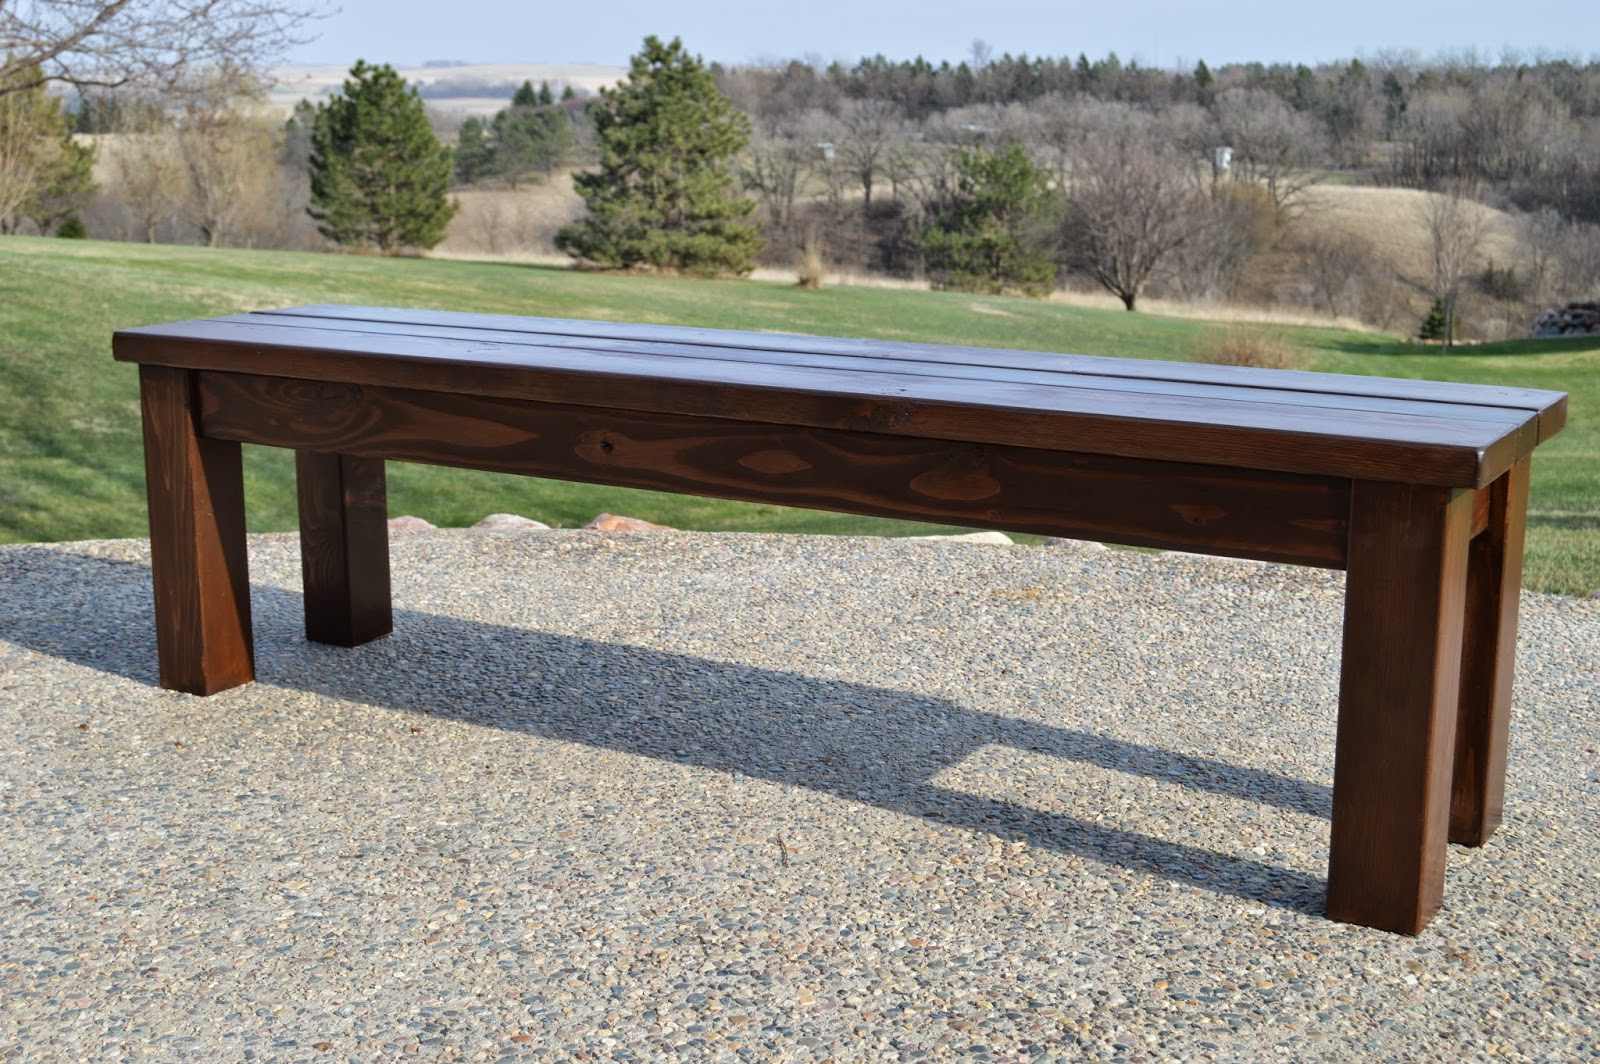 Diy Indoor Bench Seat Kruse 39s Workshop Simple Indoor Outdoor Rustic Bench Plan